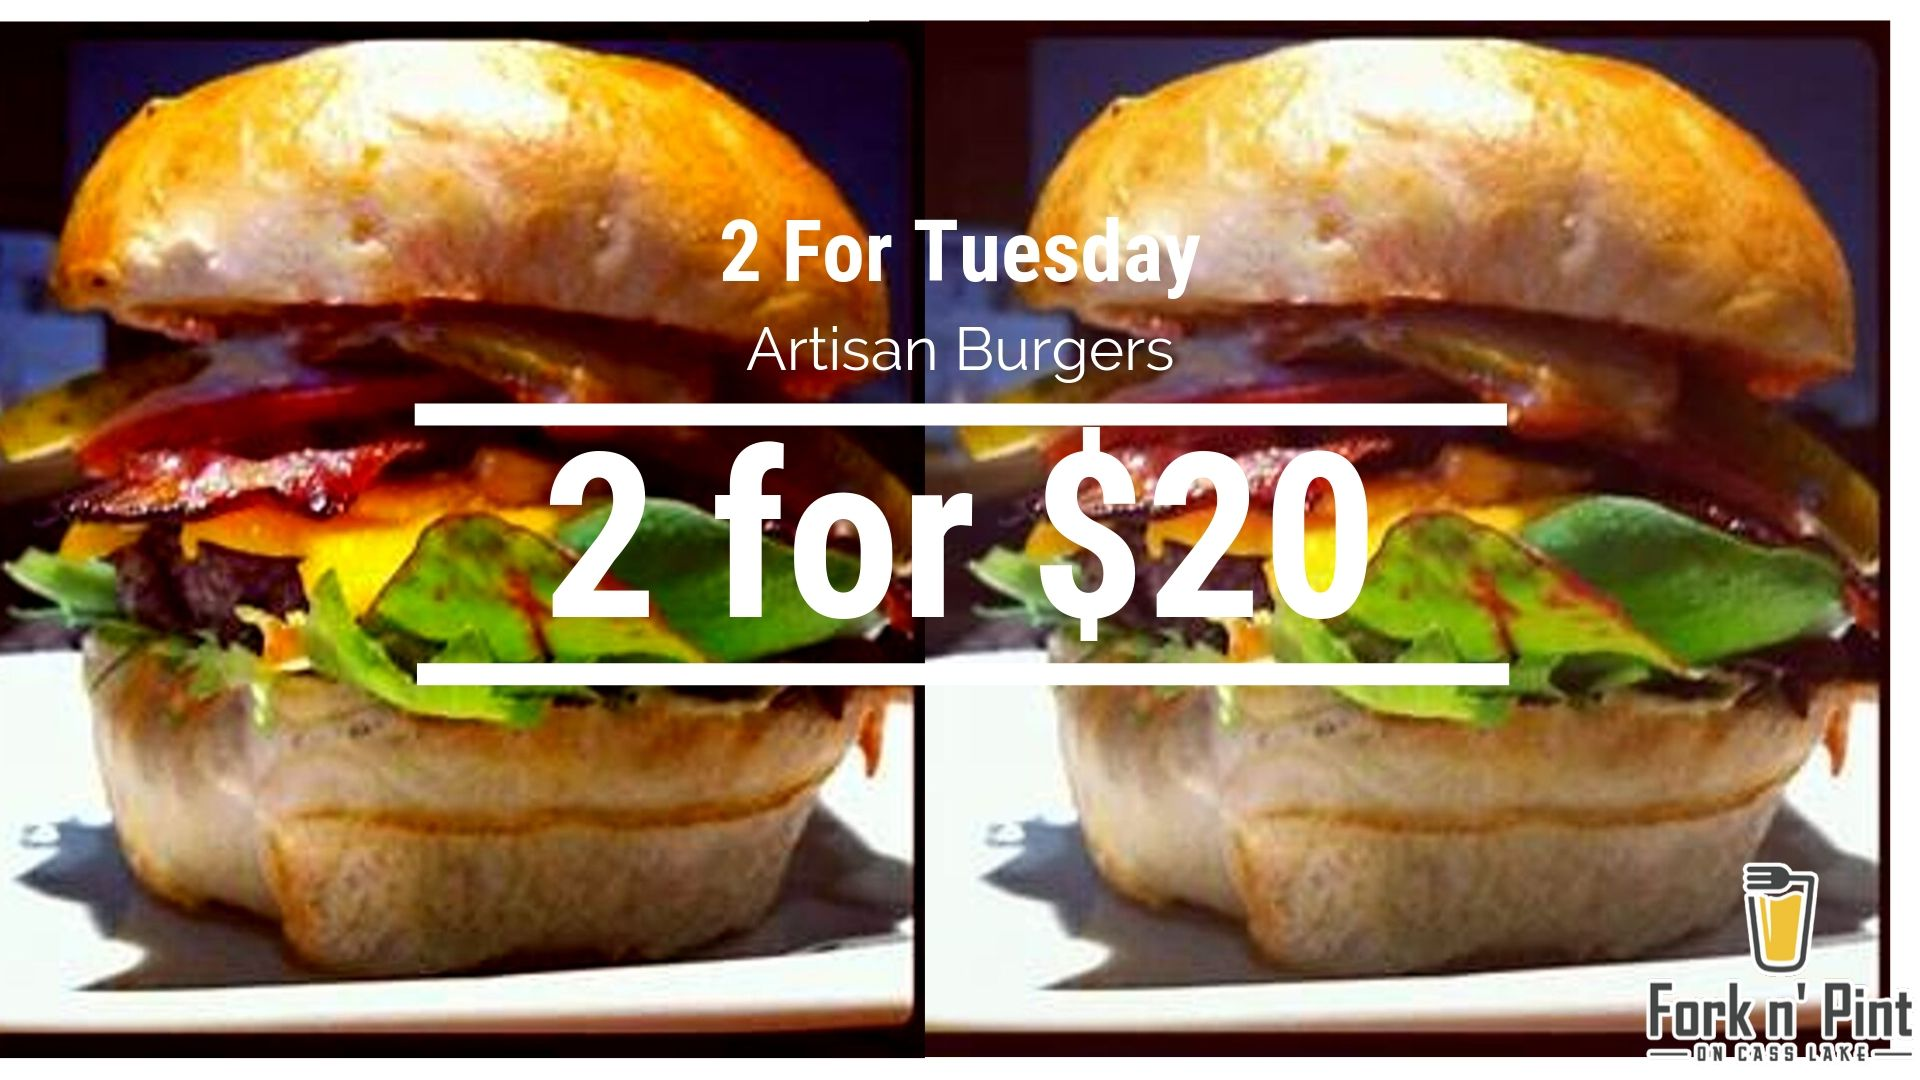 2 For Tuesday Artisan Burgers, 2 for $20